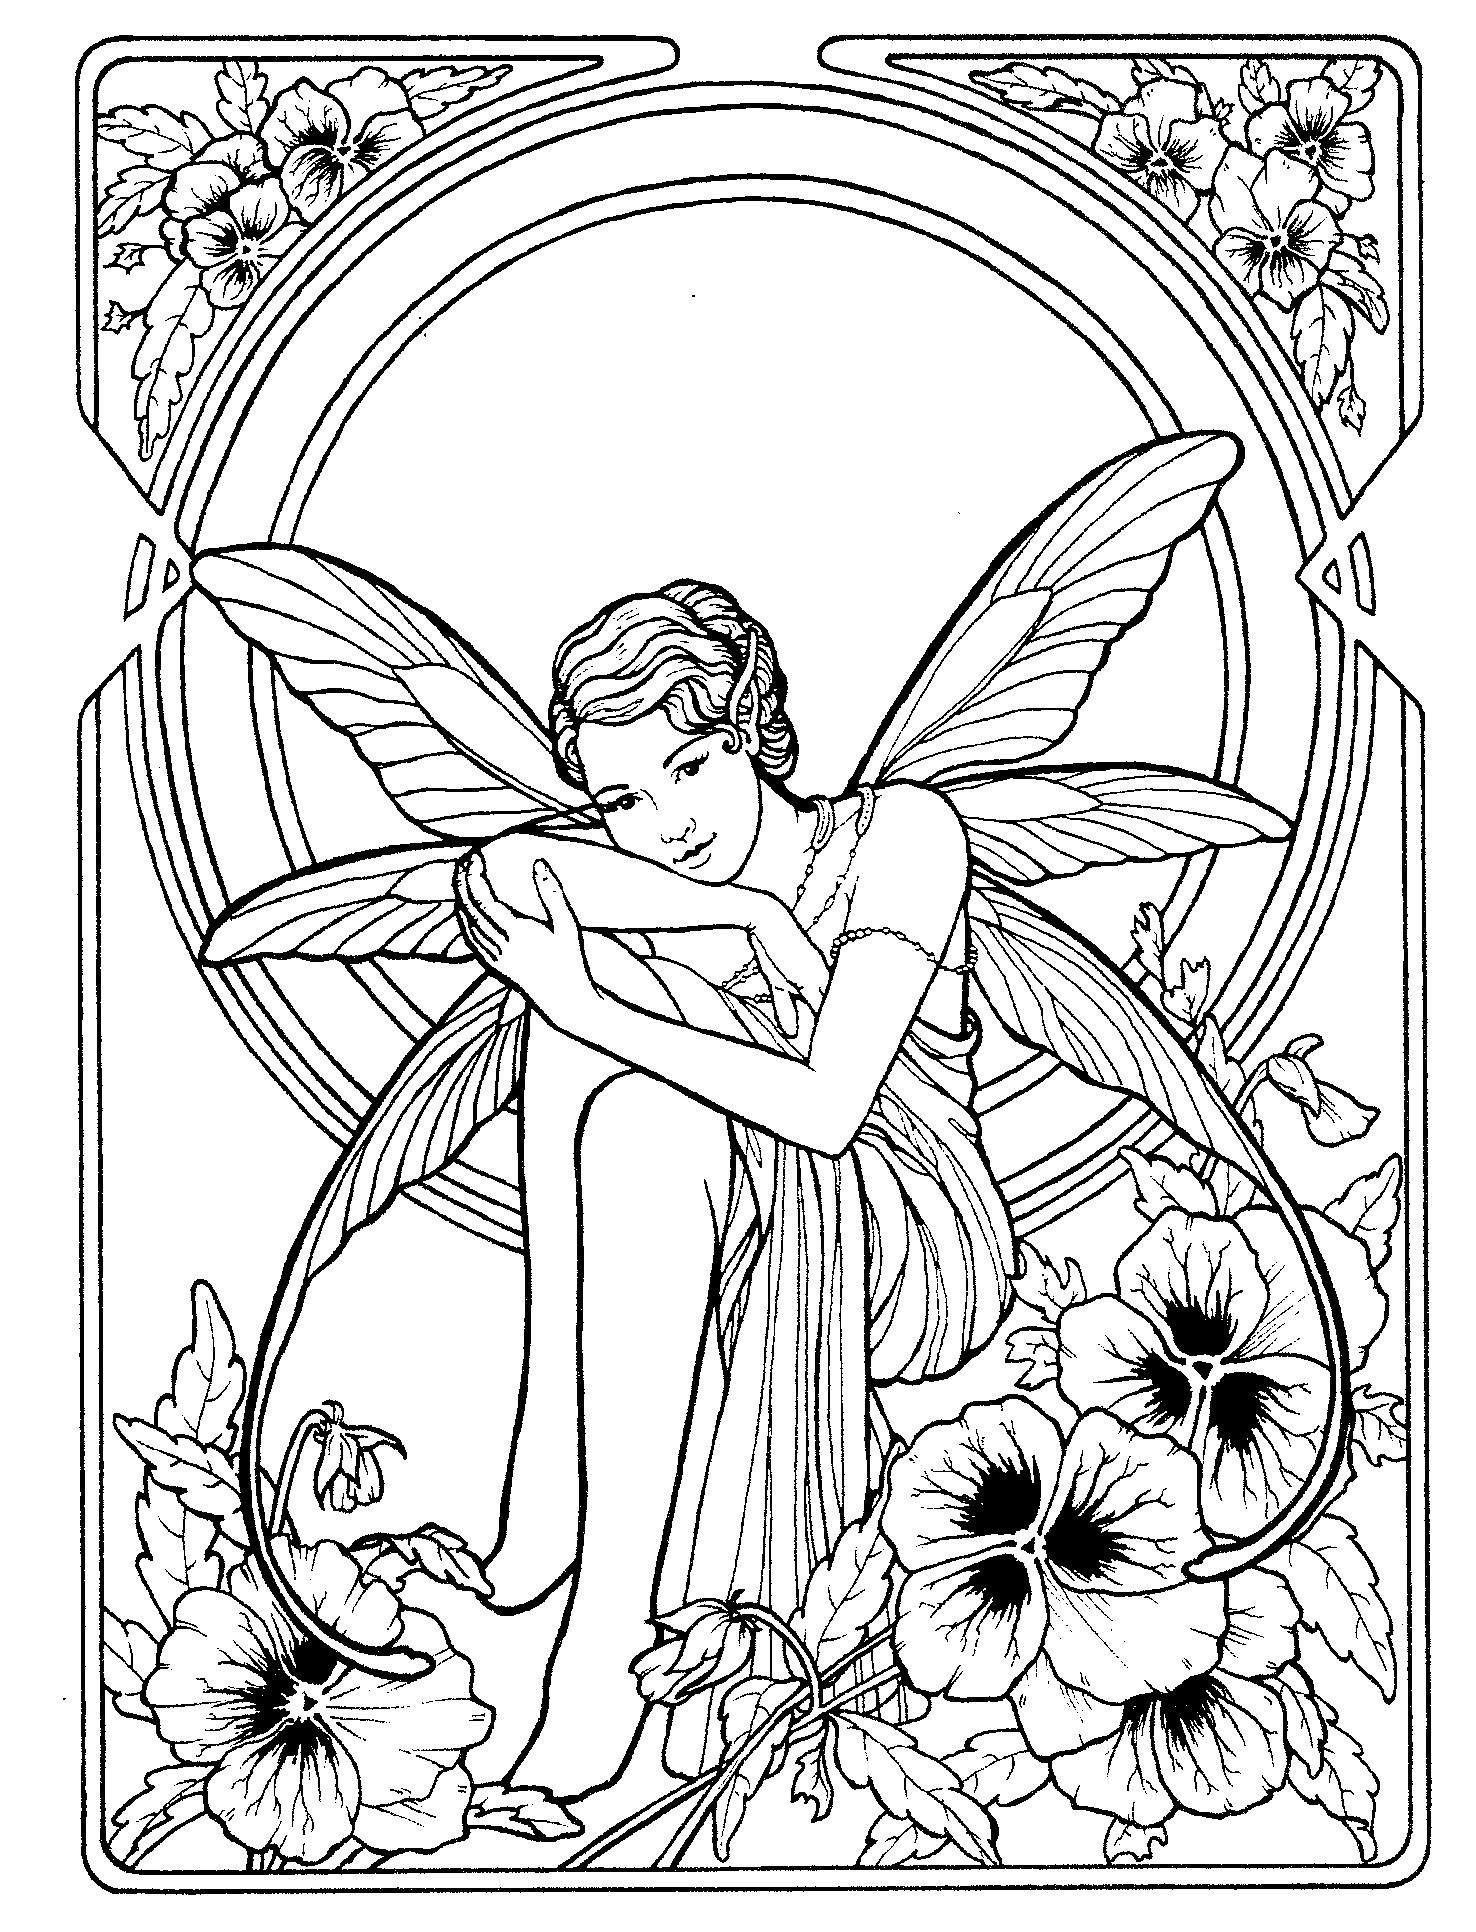 Fairy 1 | COLORING PAGES | Pinterest | Fairy, Adult coloring and ...